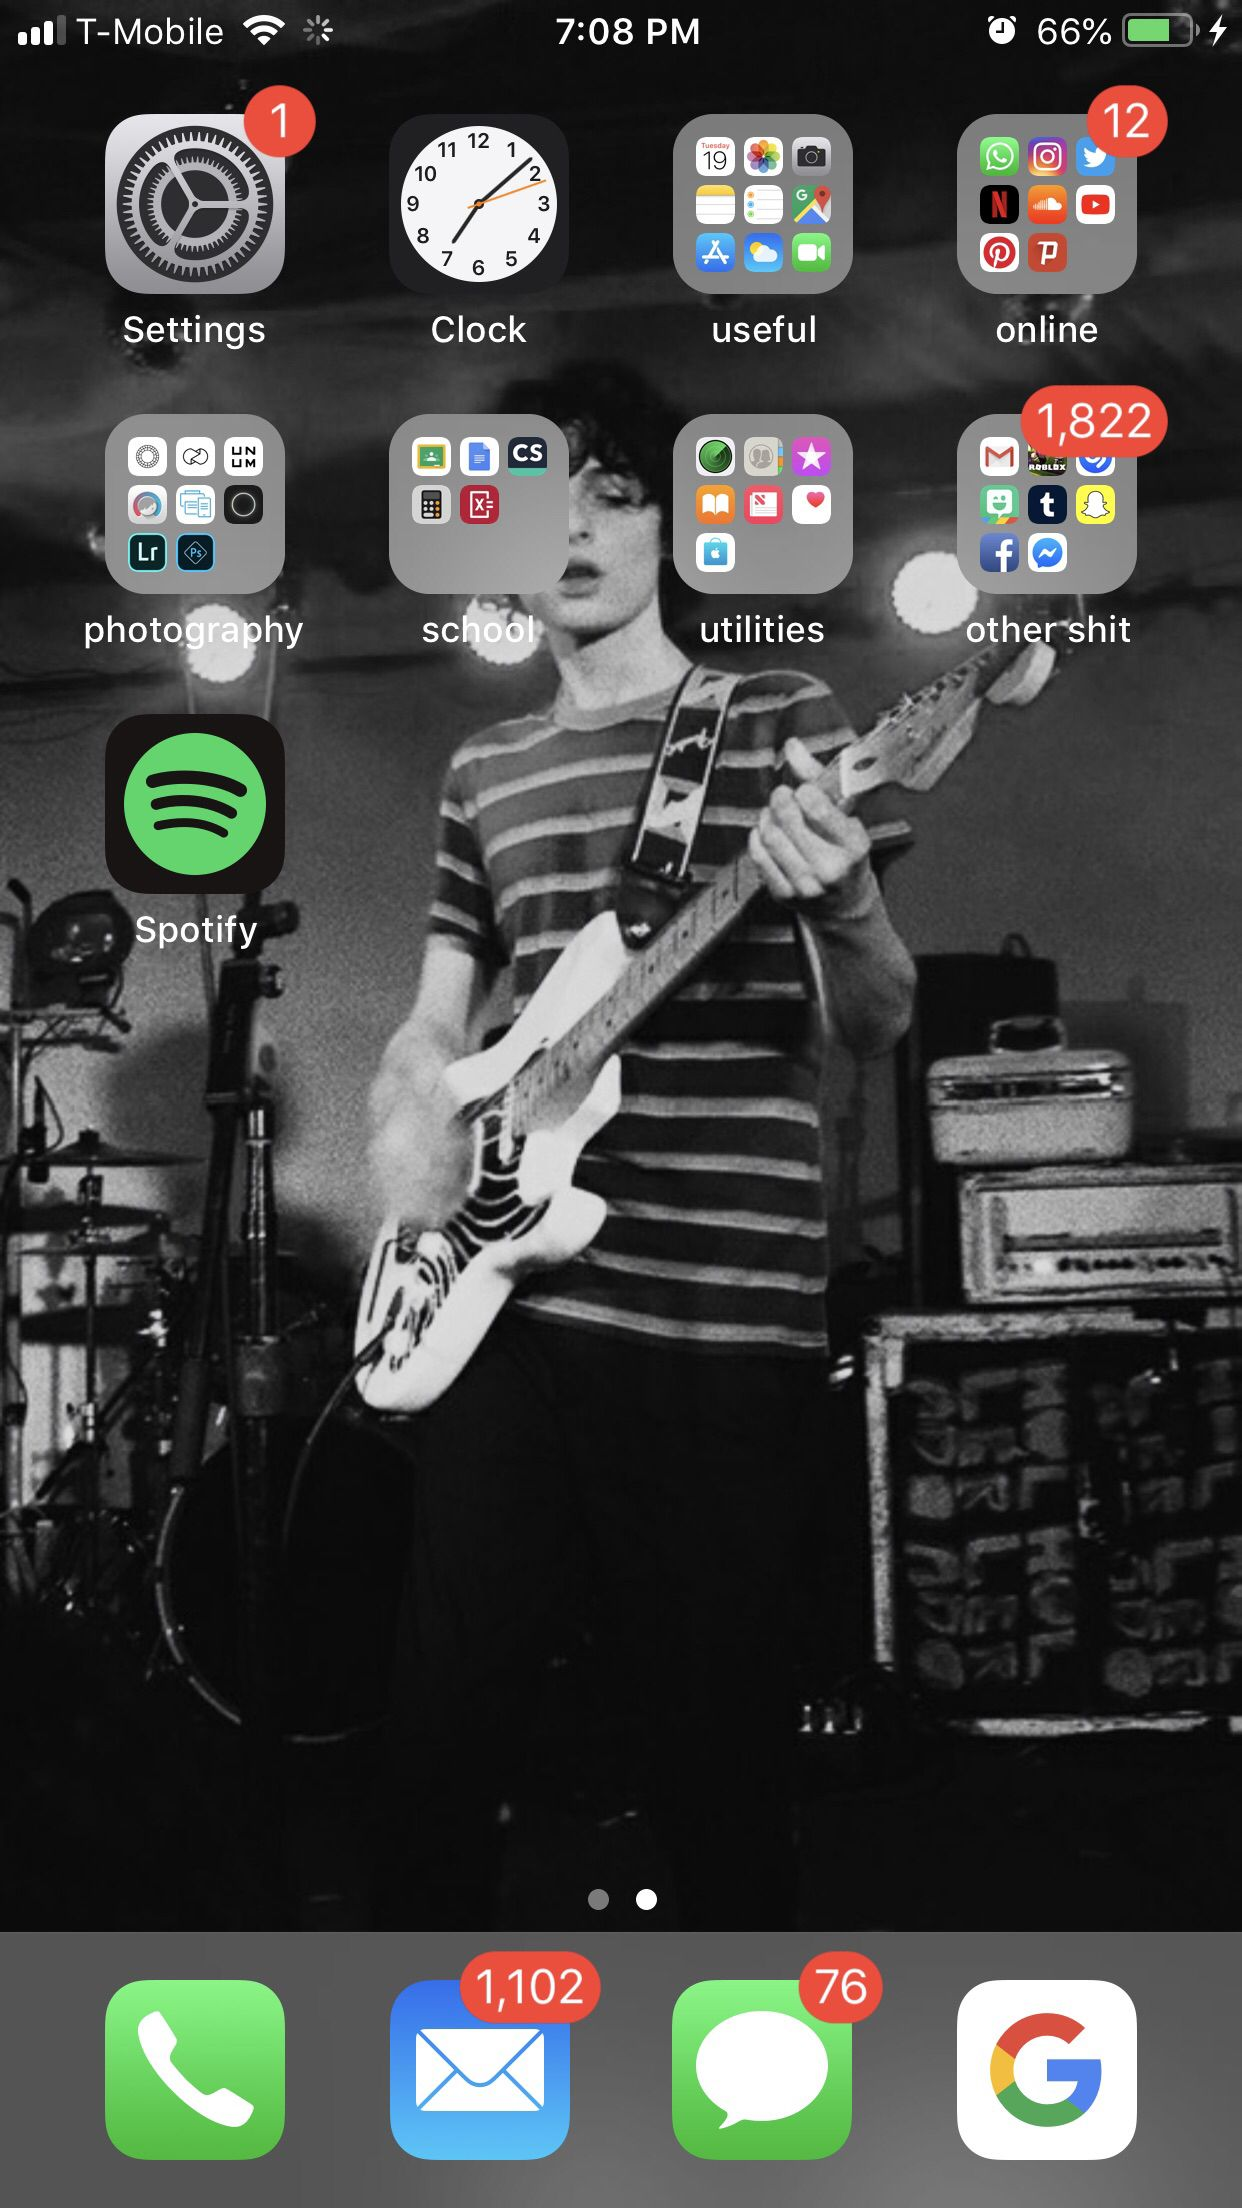 phone iPhone iphonelayoutideas in 2019 Iphone layout